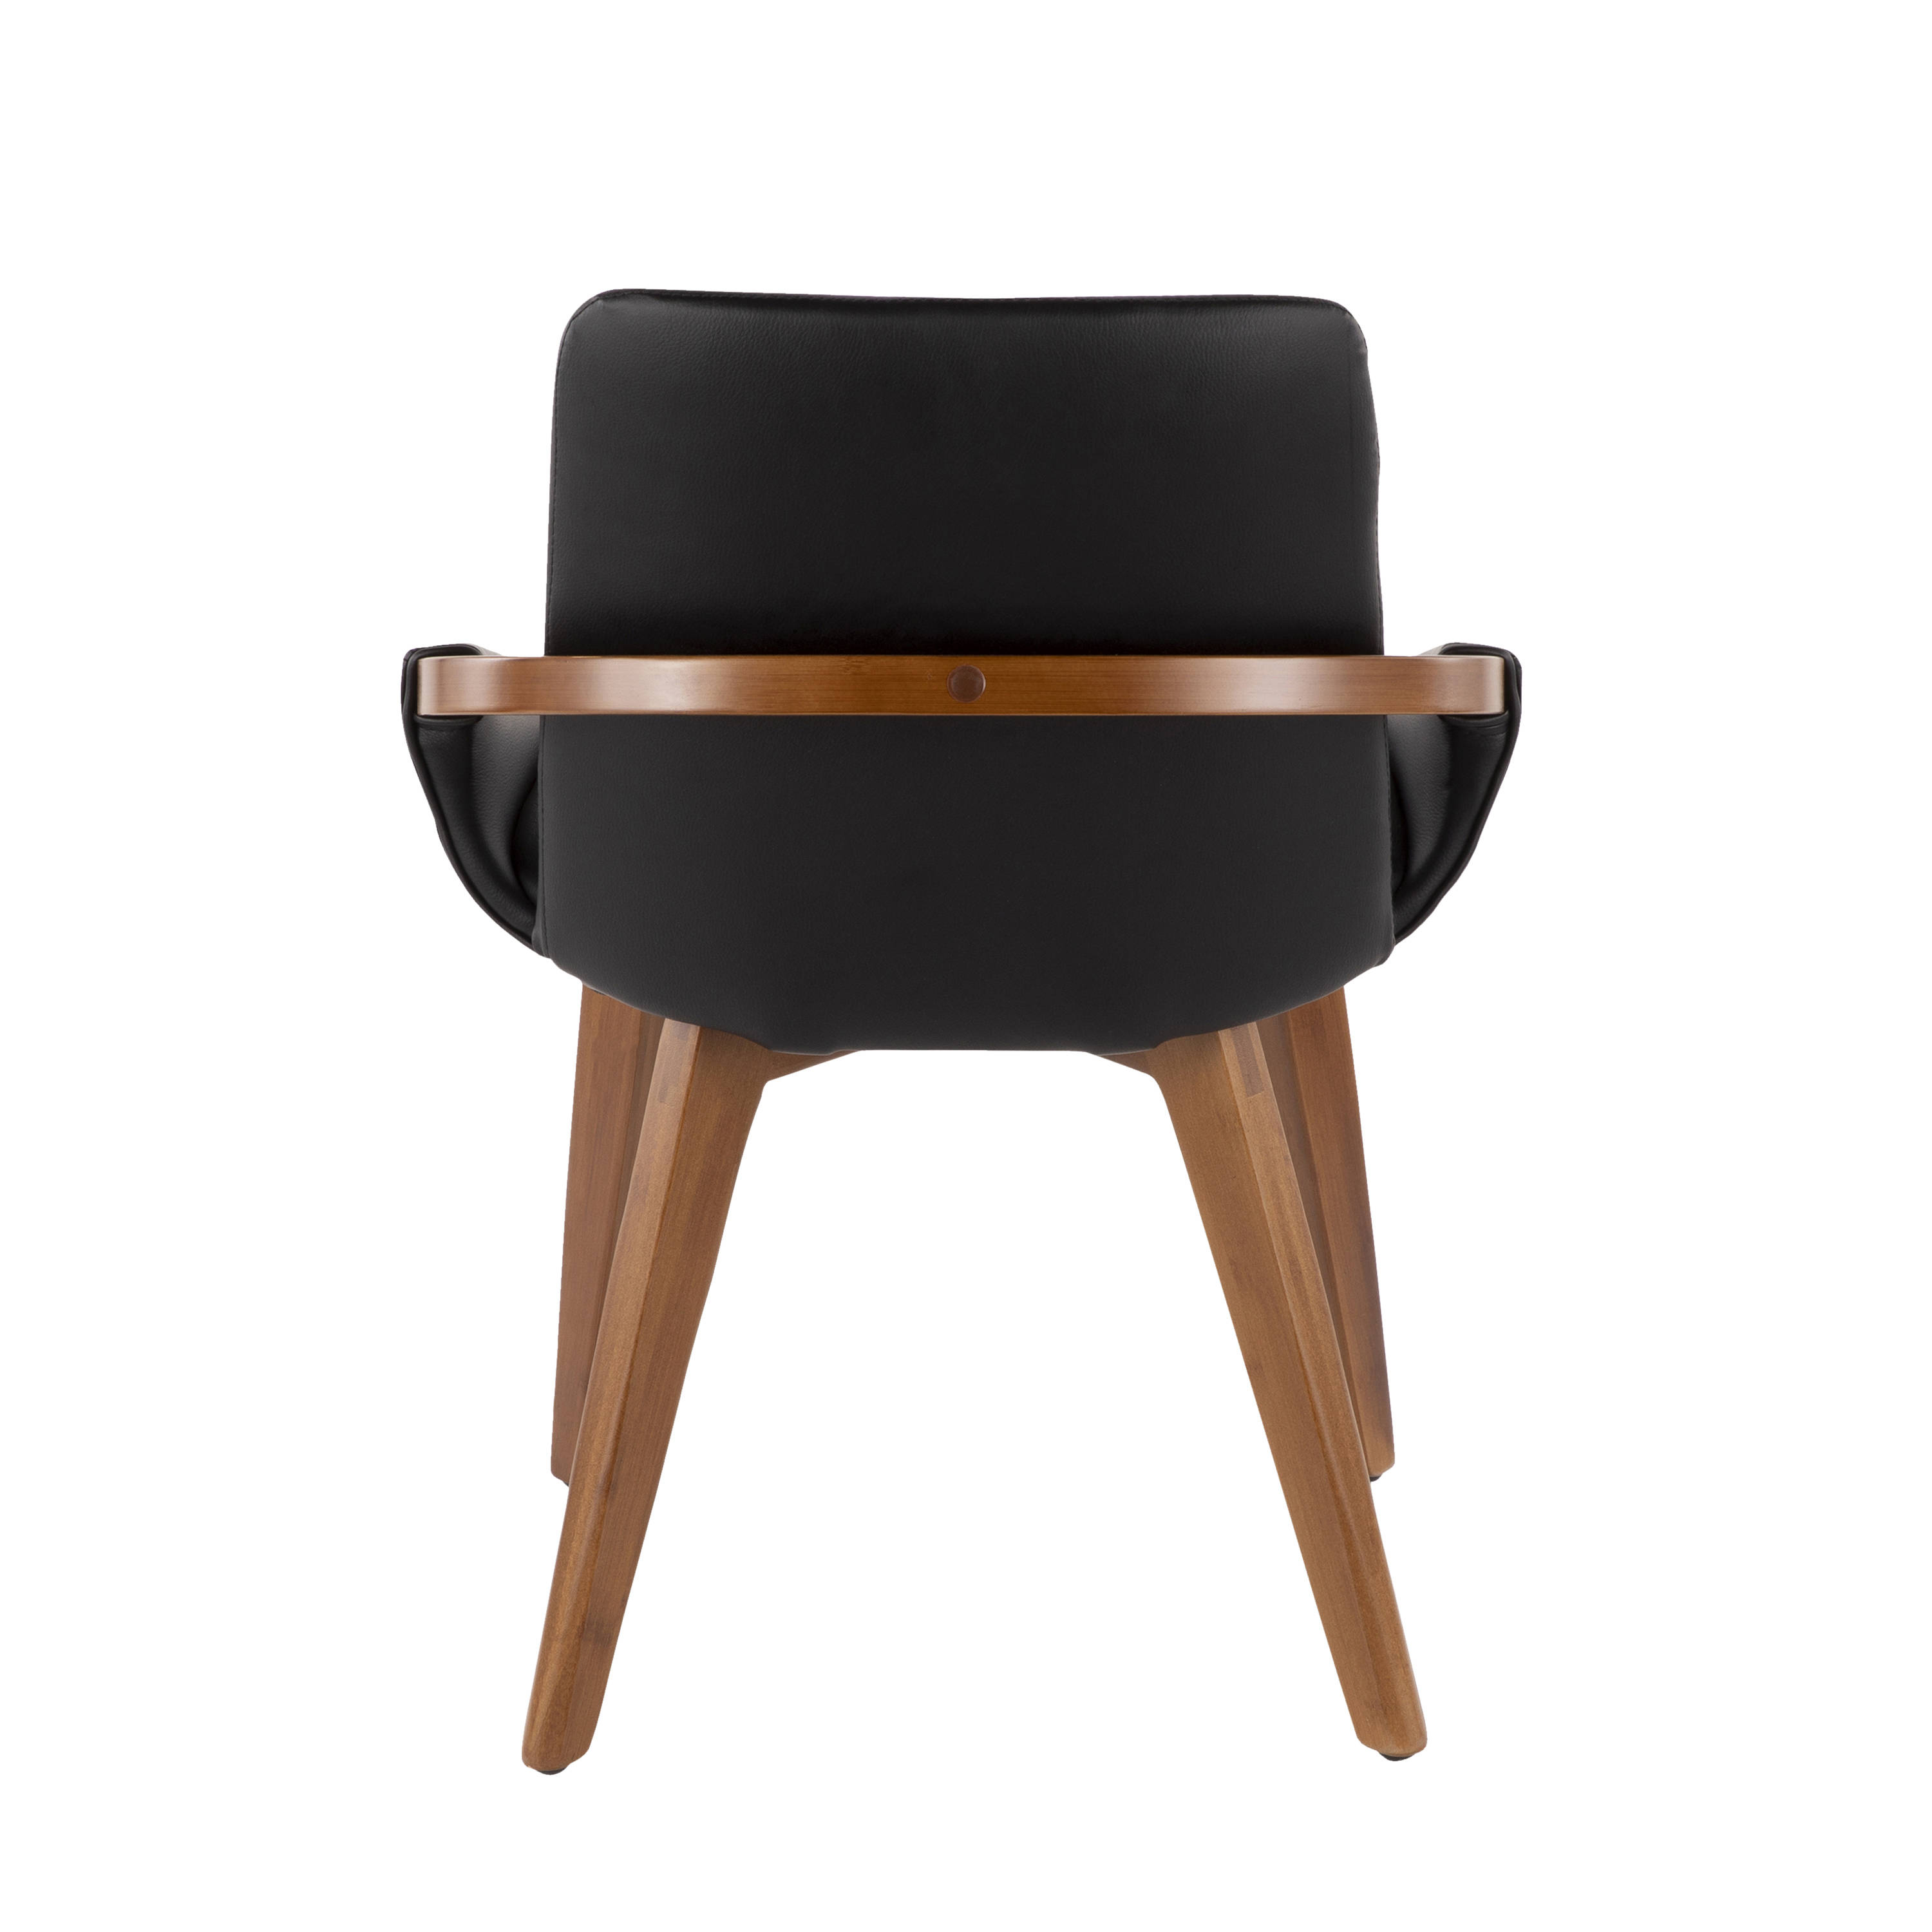 Lumisource Cosmo Black Chair  sc 1 st  The Classy Home & Lumisource Cosmo Black Chair | The Classy Home